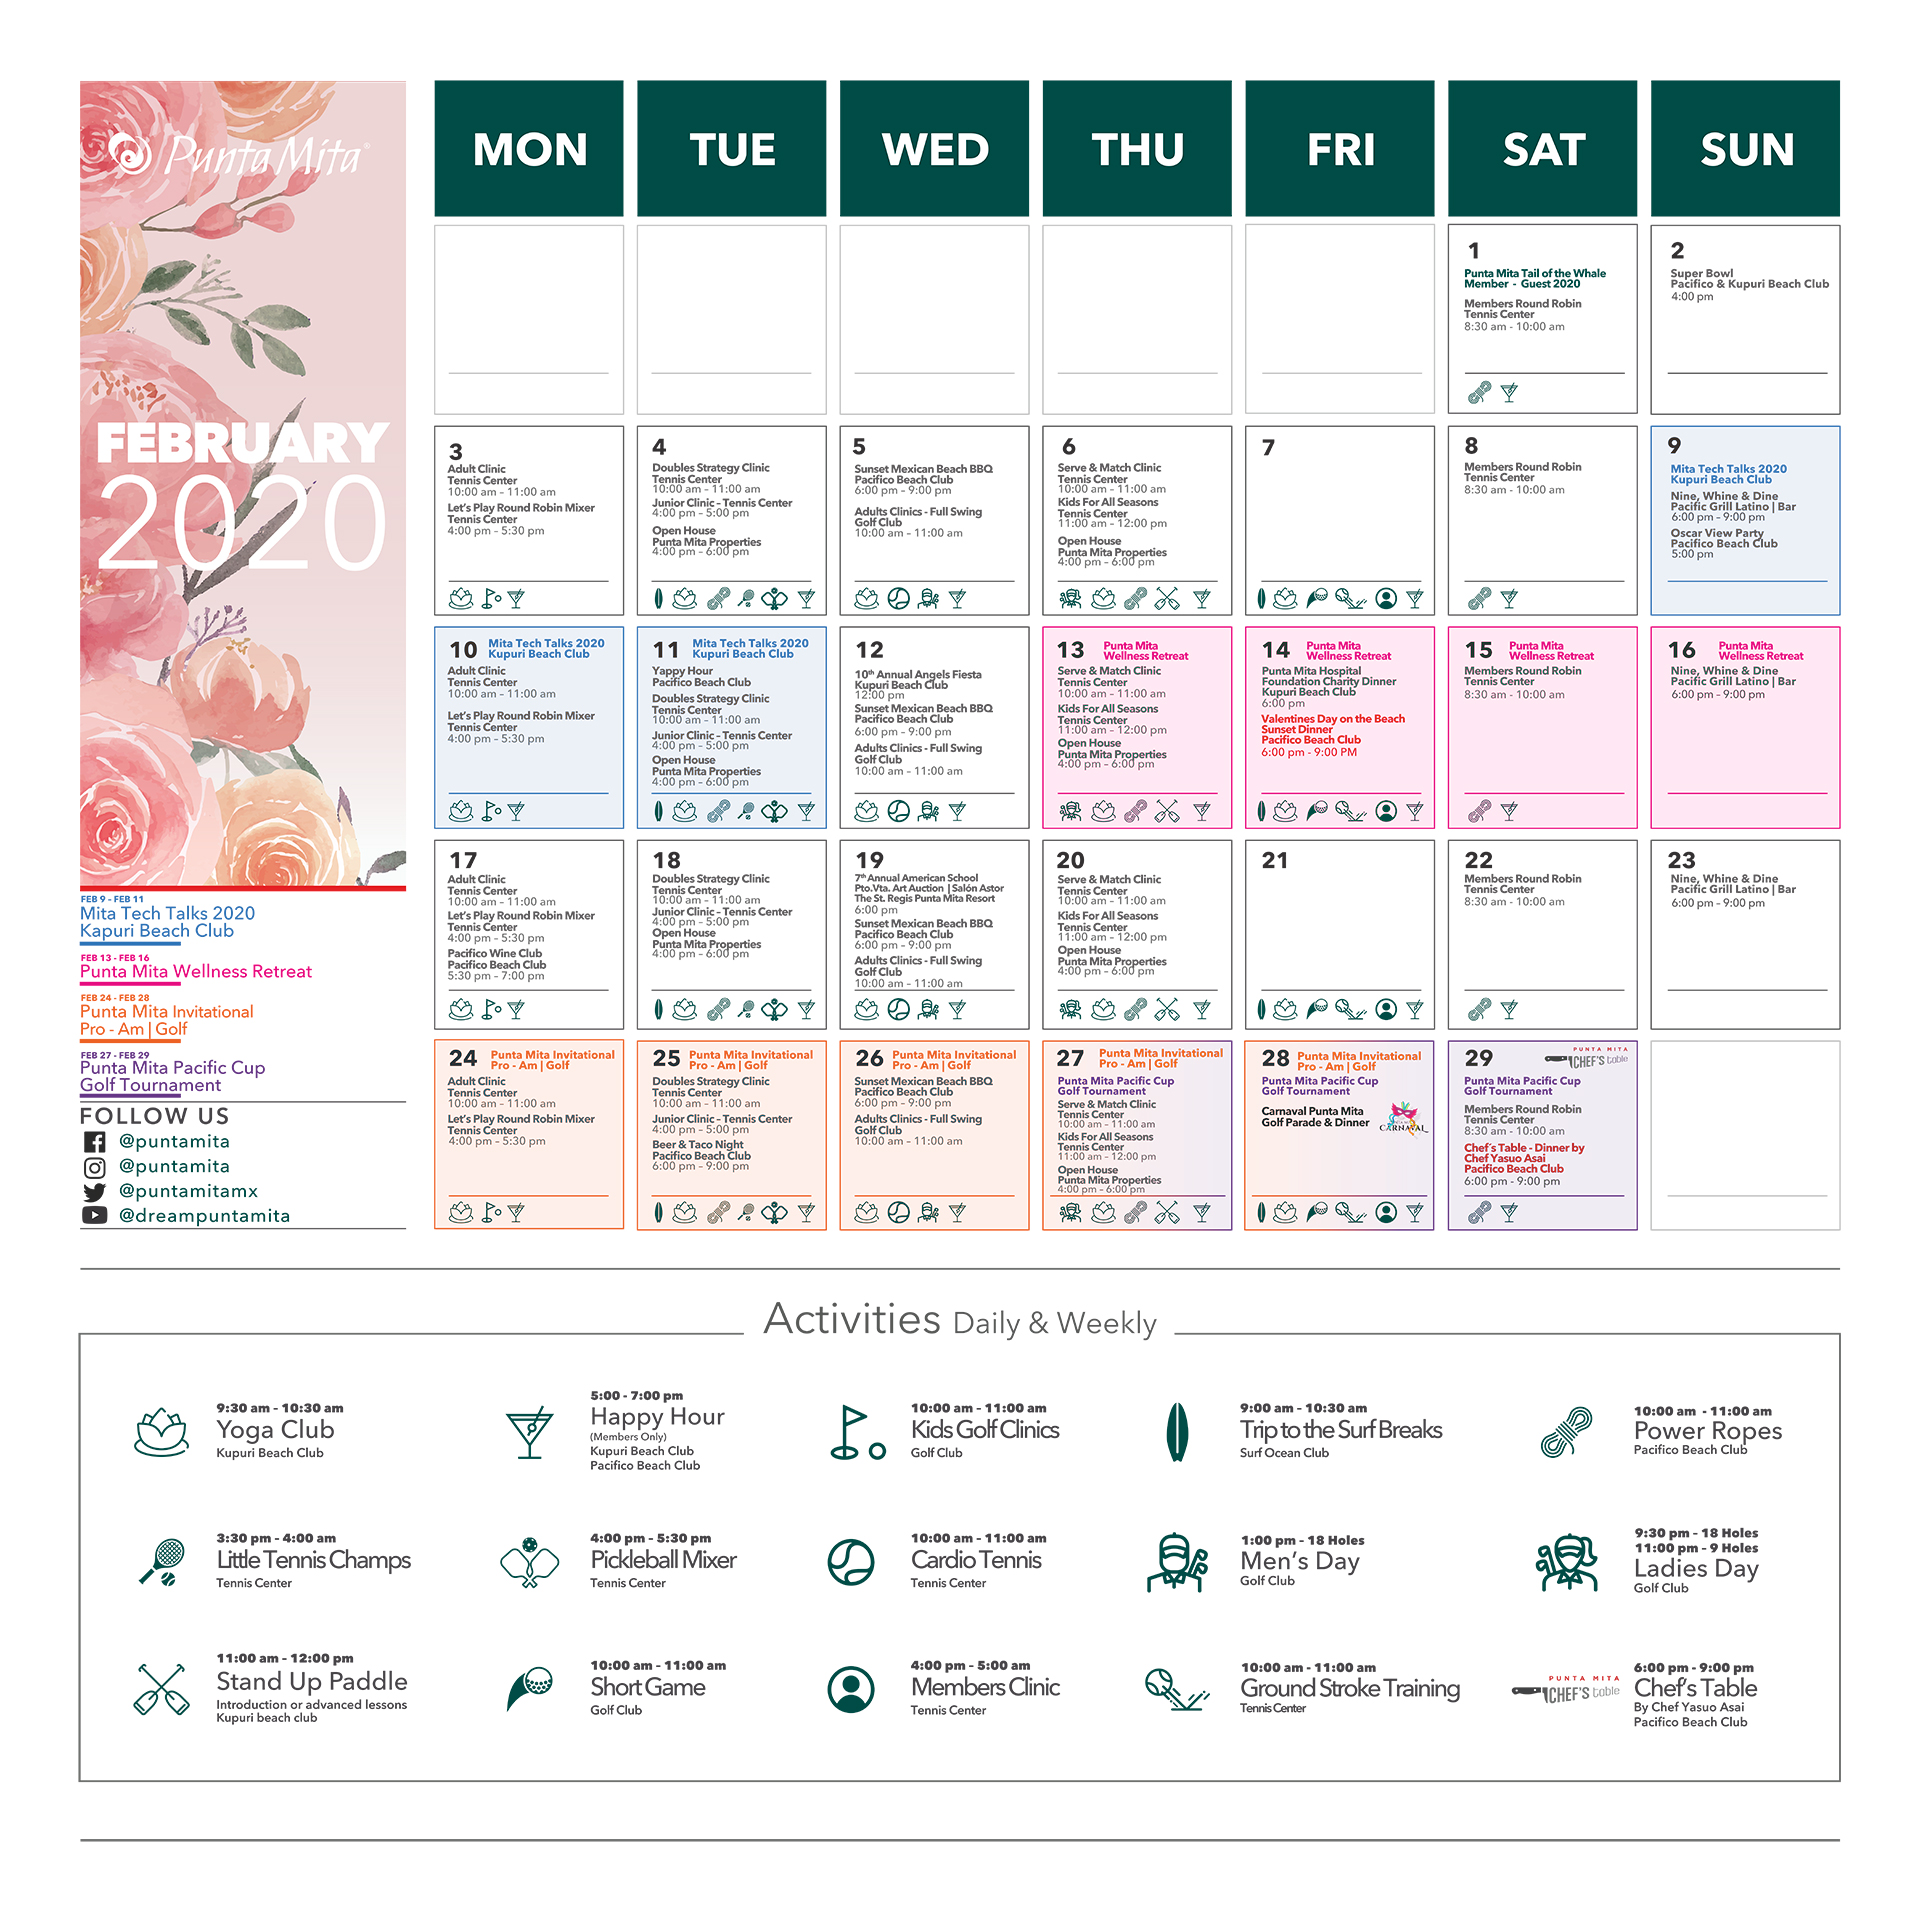 Click to Download Calendar in PDF